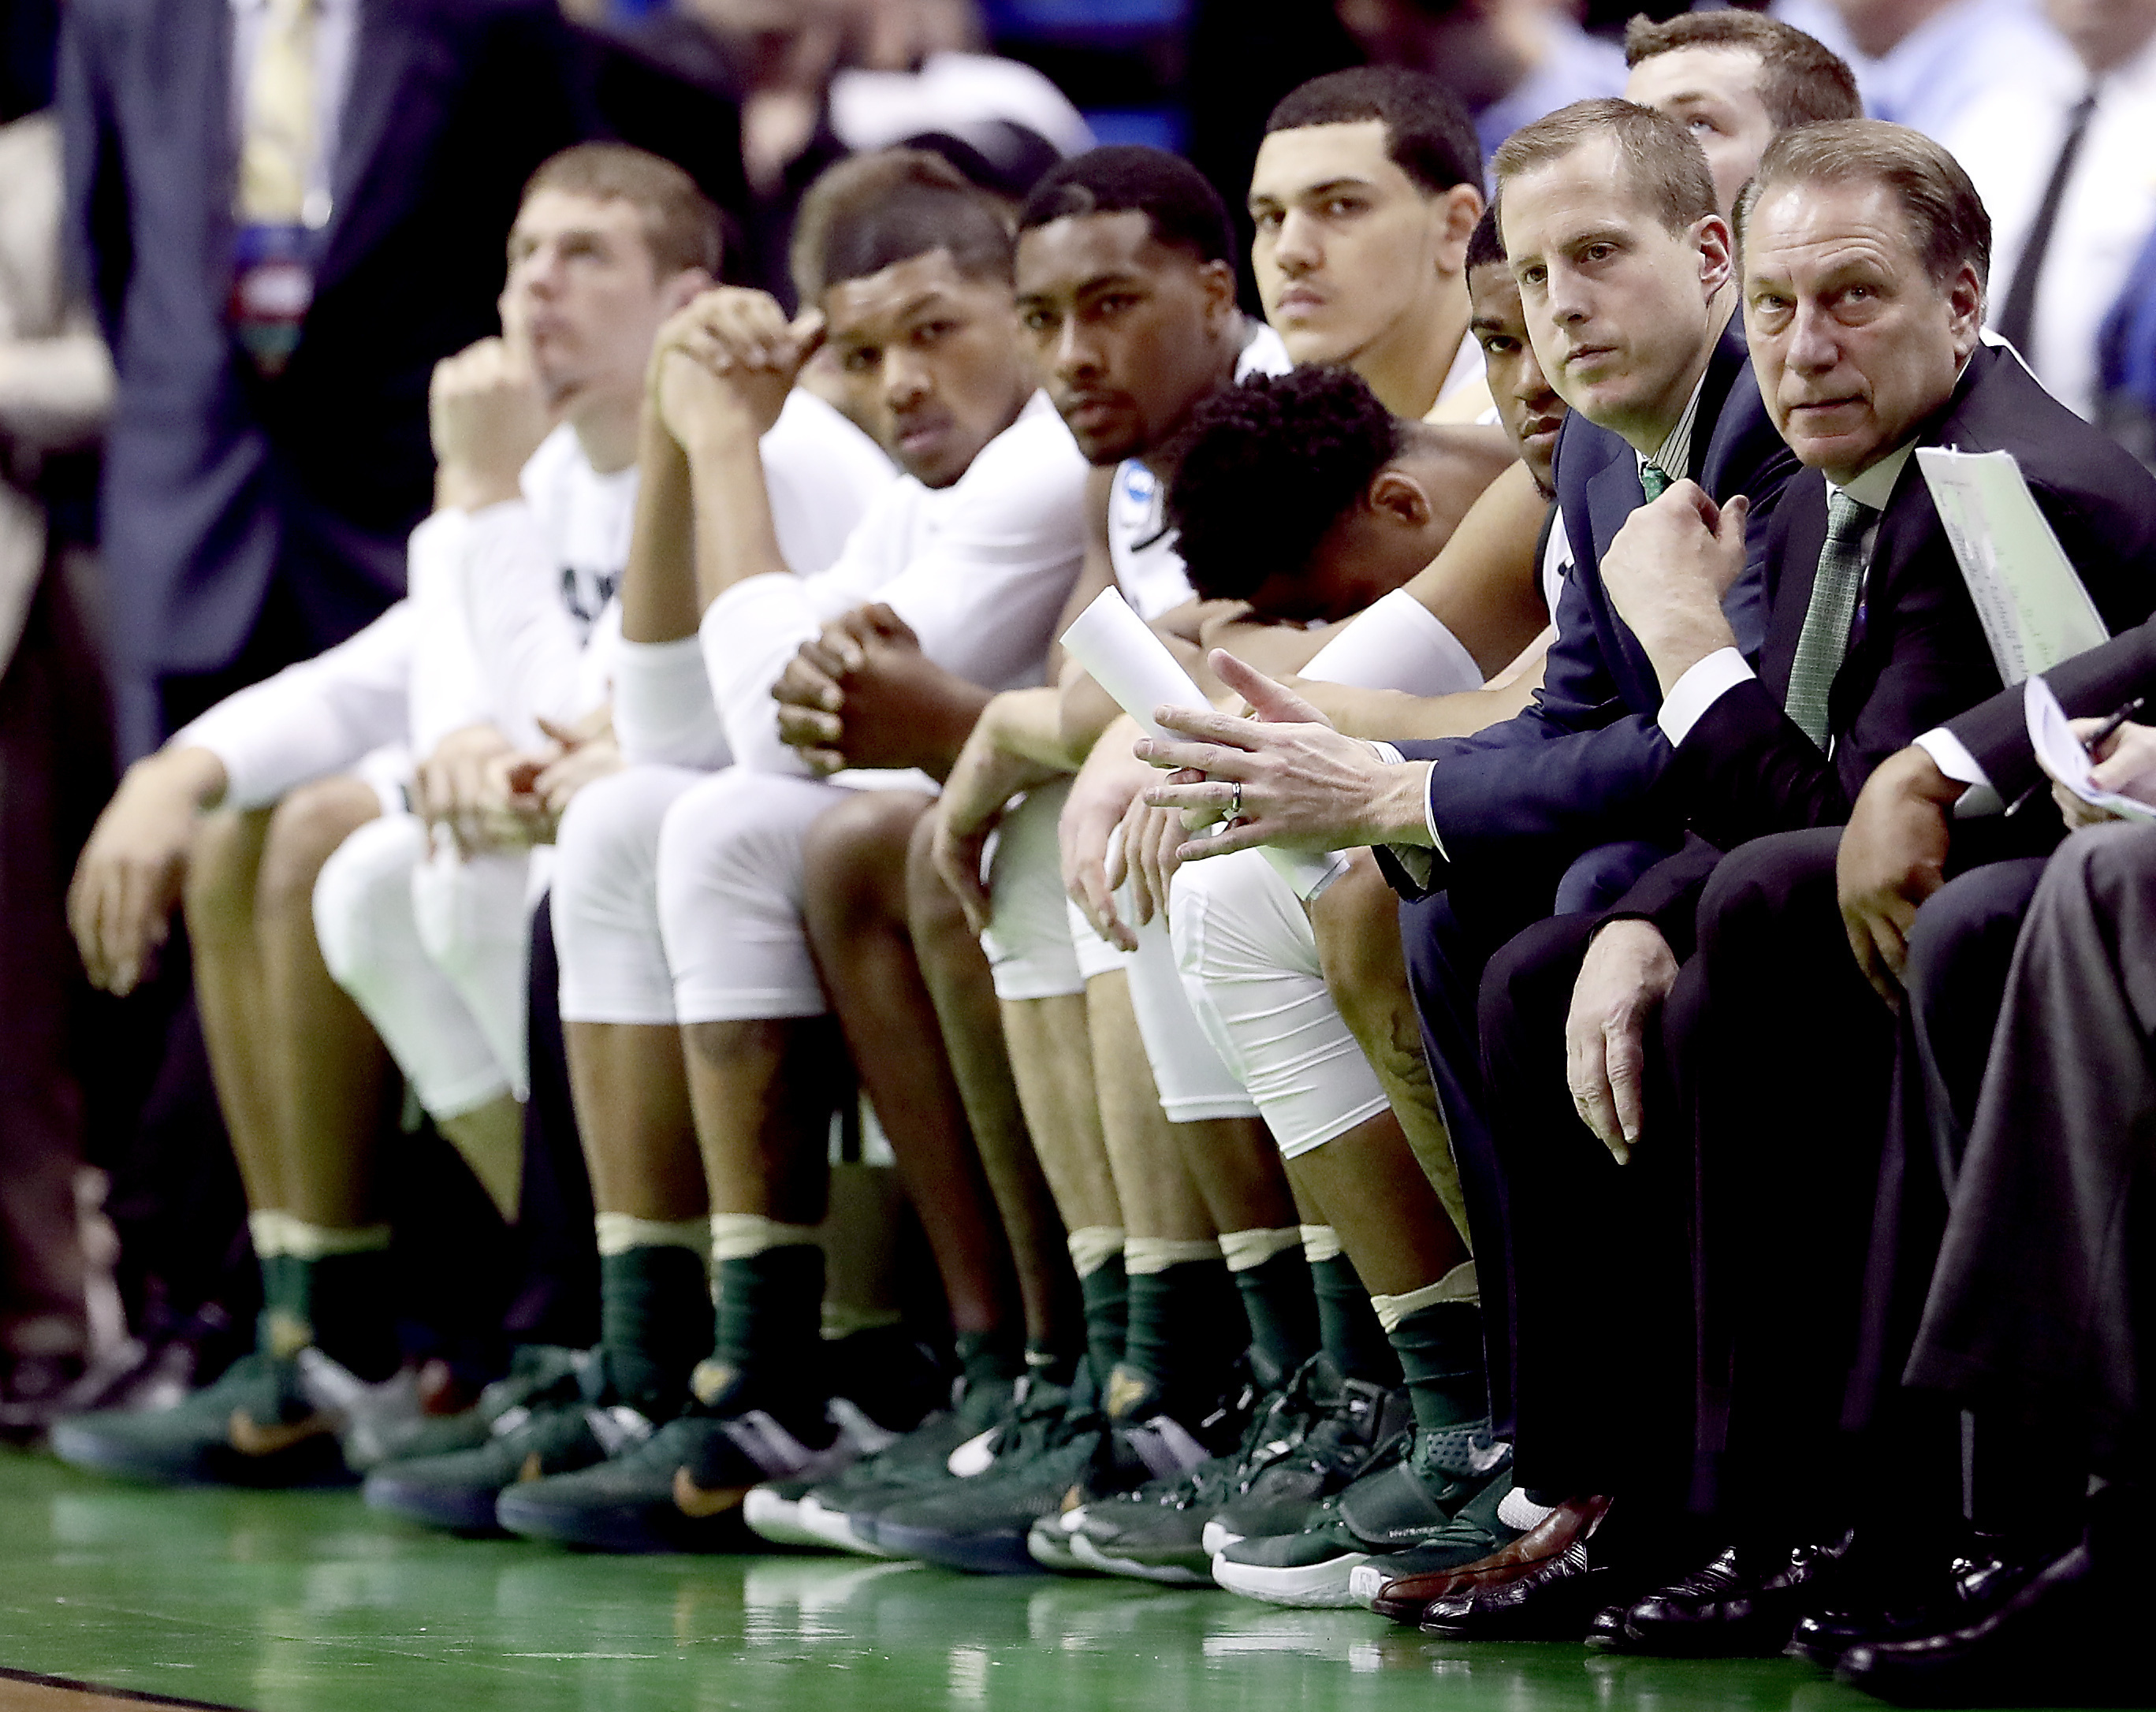 The Michigan State bench watches during the final moments of a first-round men's college basketball game against Middle Tennessee in the NCAA Tournament, Friday, March 18, 2016, in St. Louis. Middle Tennessee won 90-81. (AP Photo/Charlie Riedel)